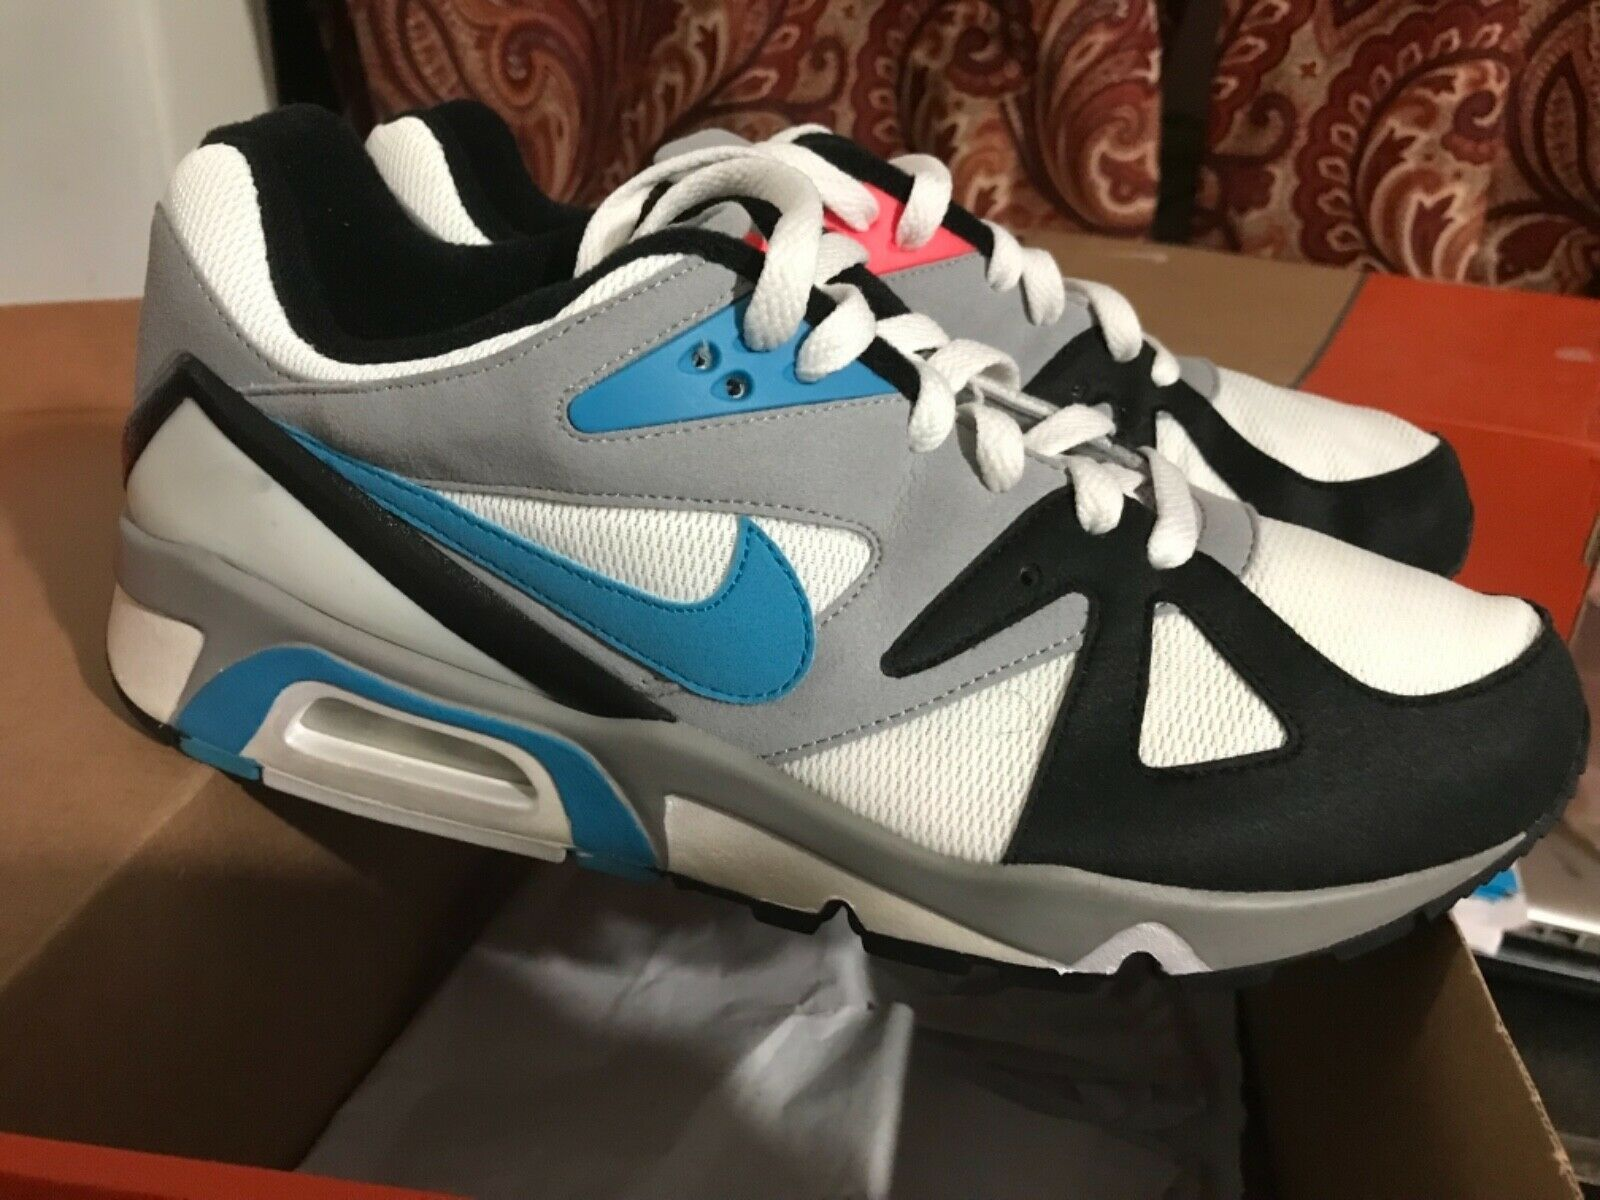 meilleures baskets 2eb1b ba99c Nike Air Structure Triax 91 Mens Size 9 DS Summit White/Black/Teal/Infrared